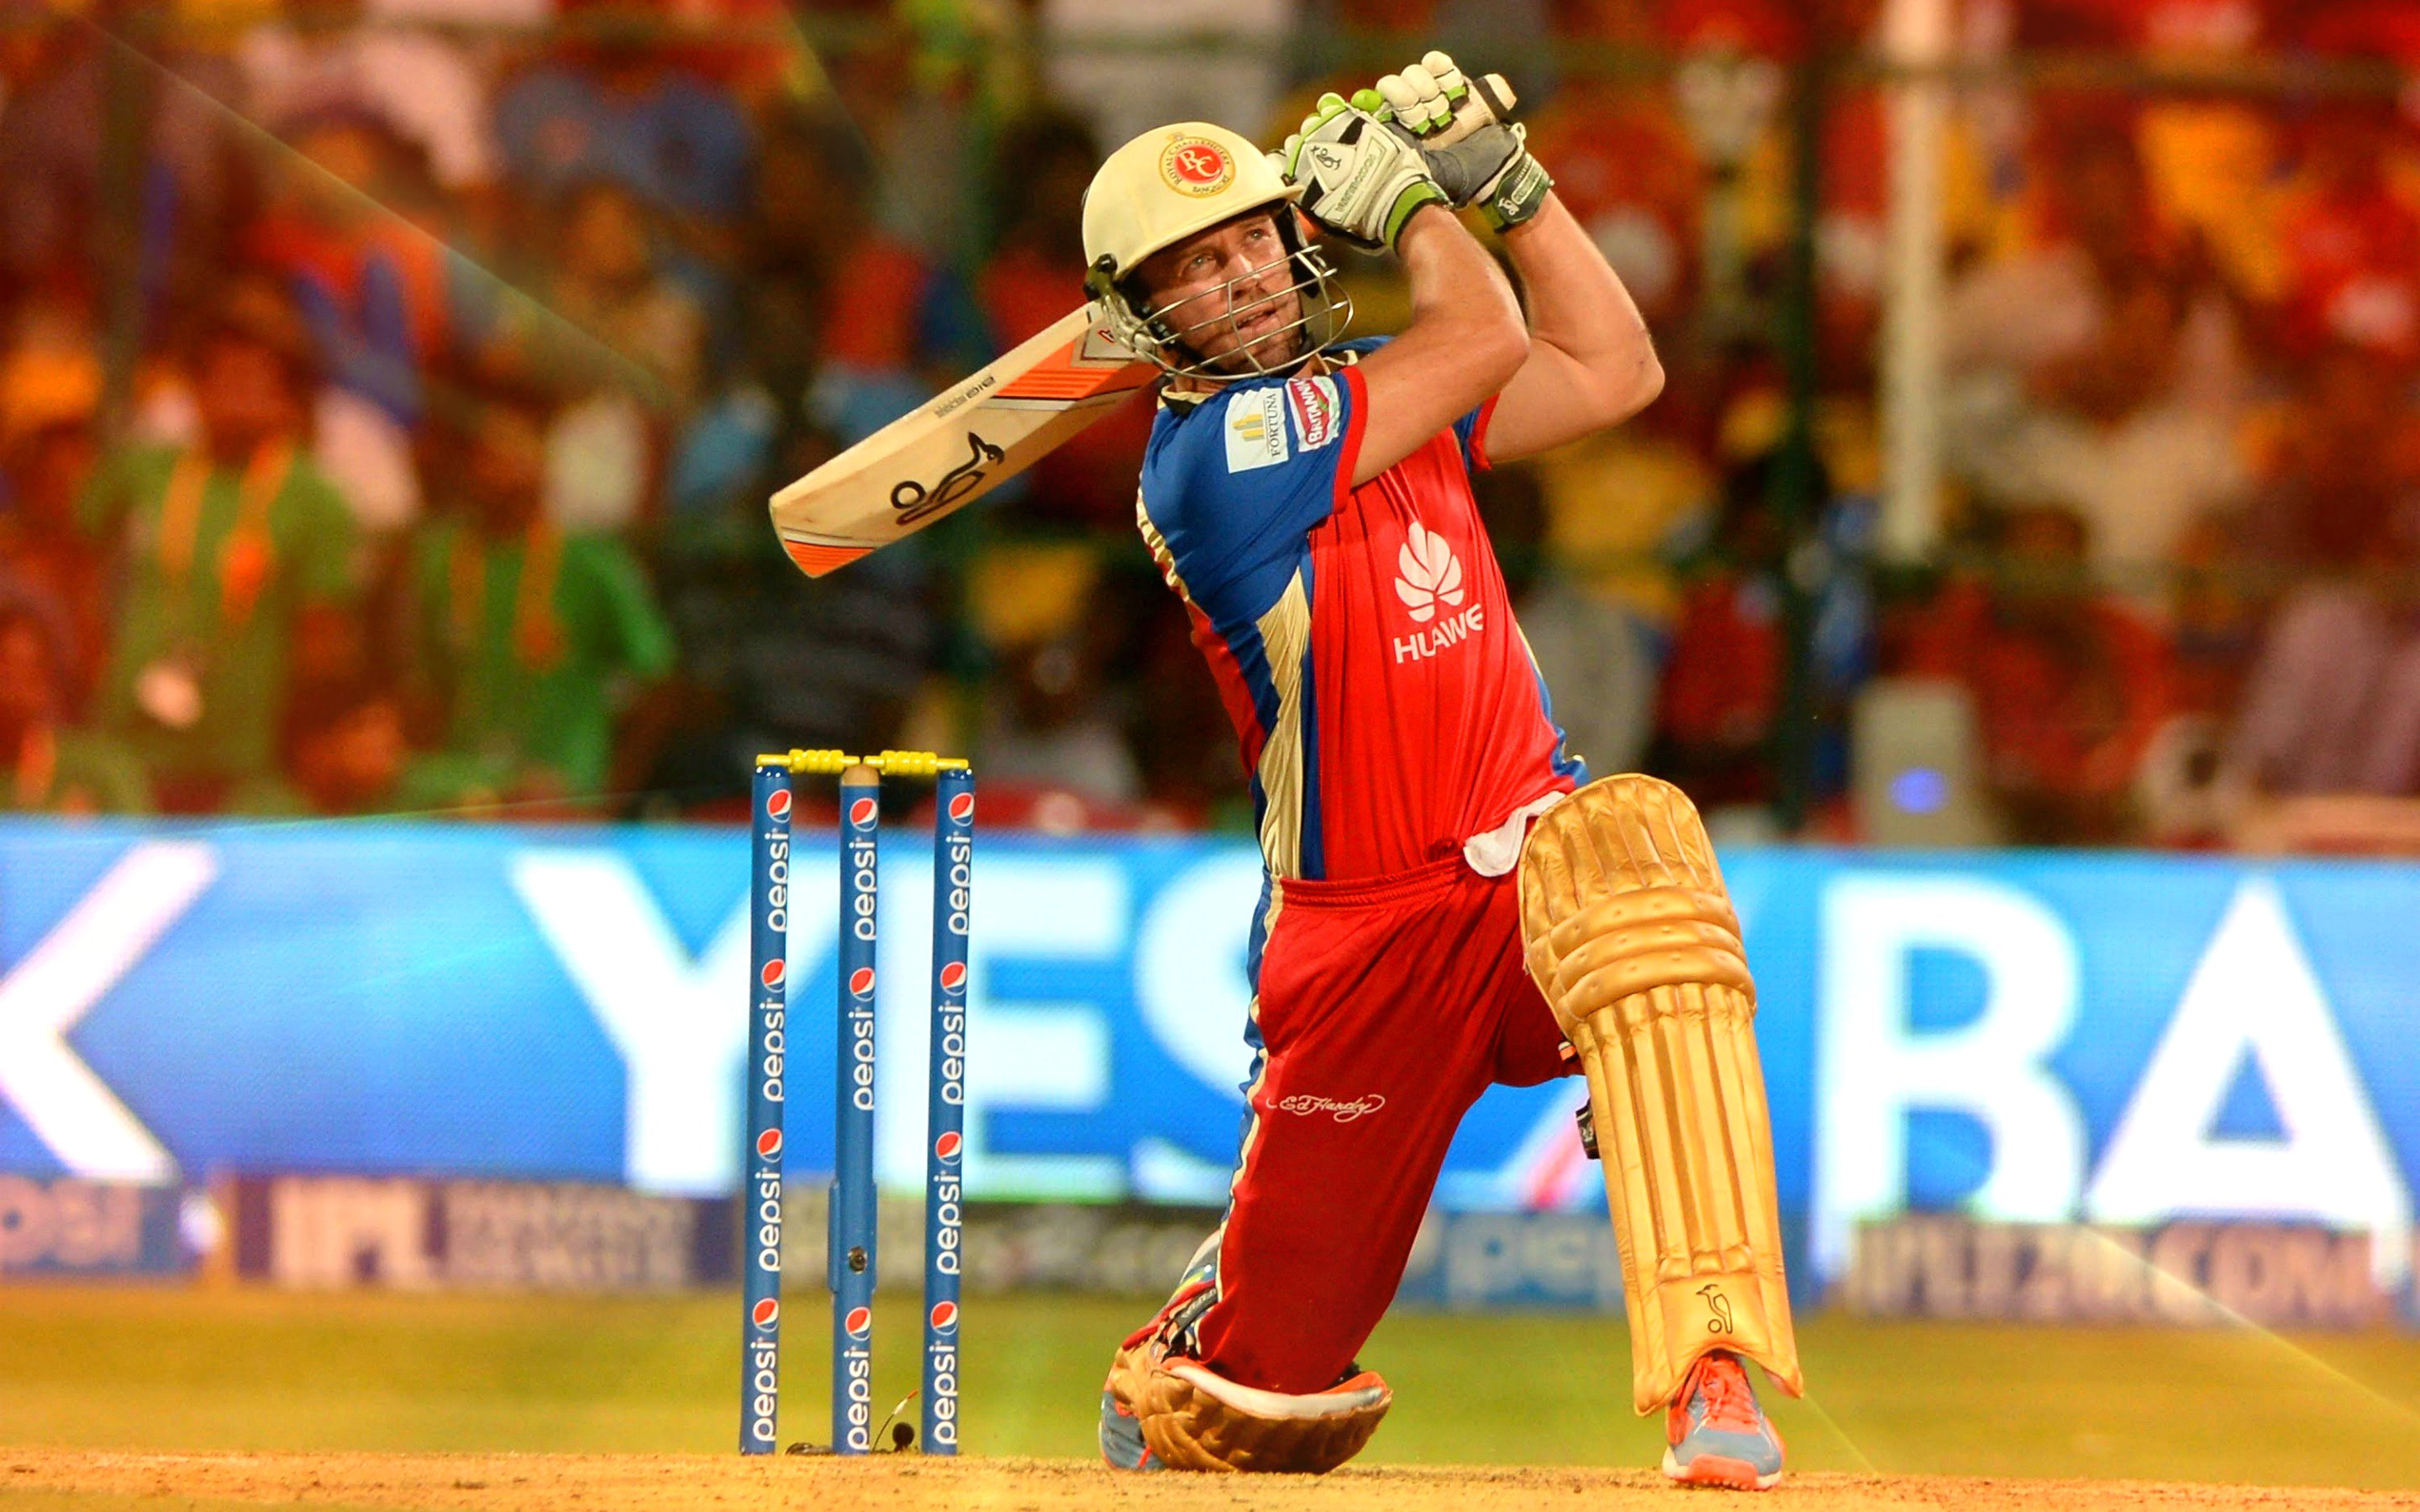 Wallpaper download cricket - Ab De Villiers